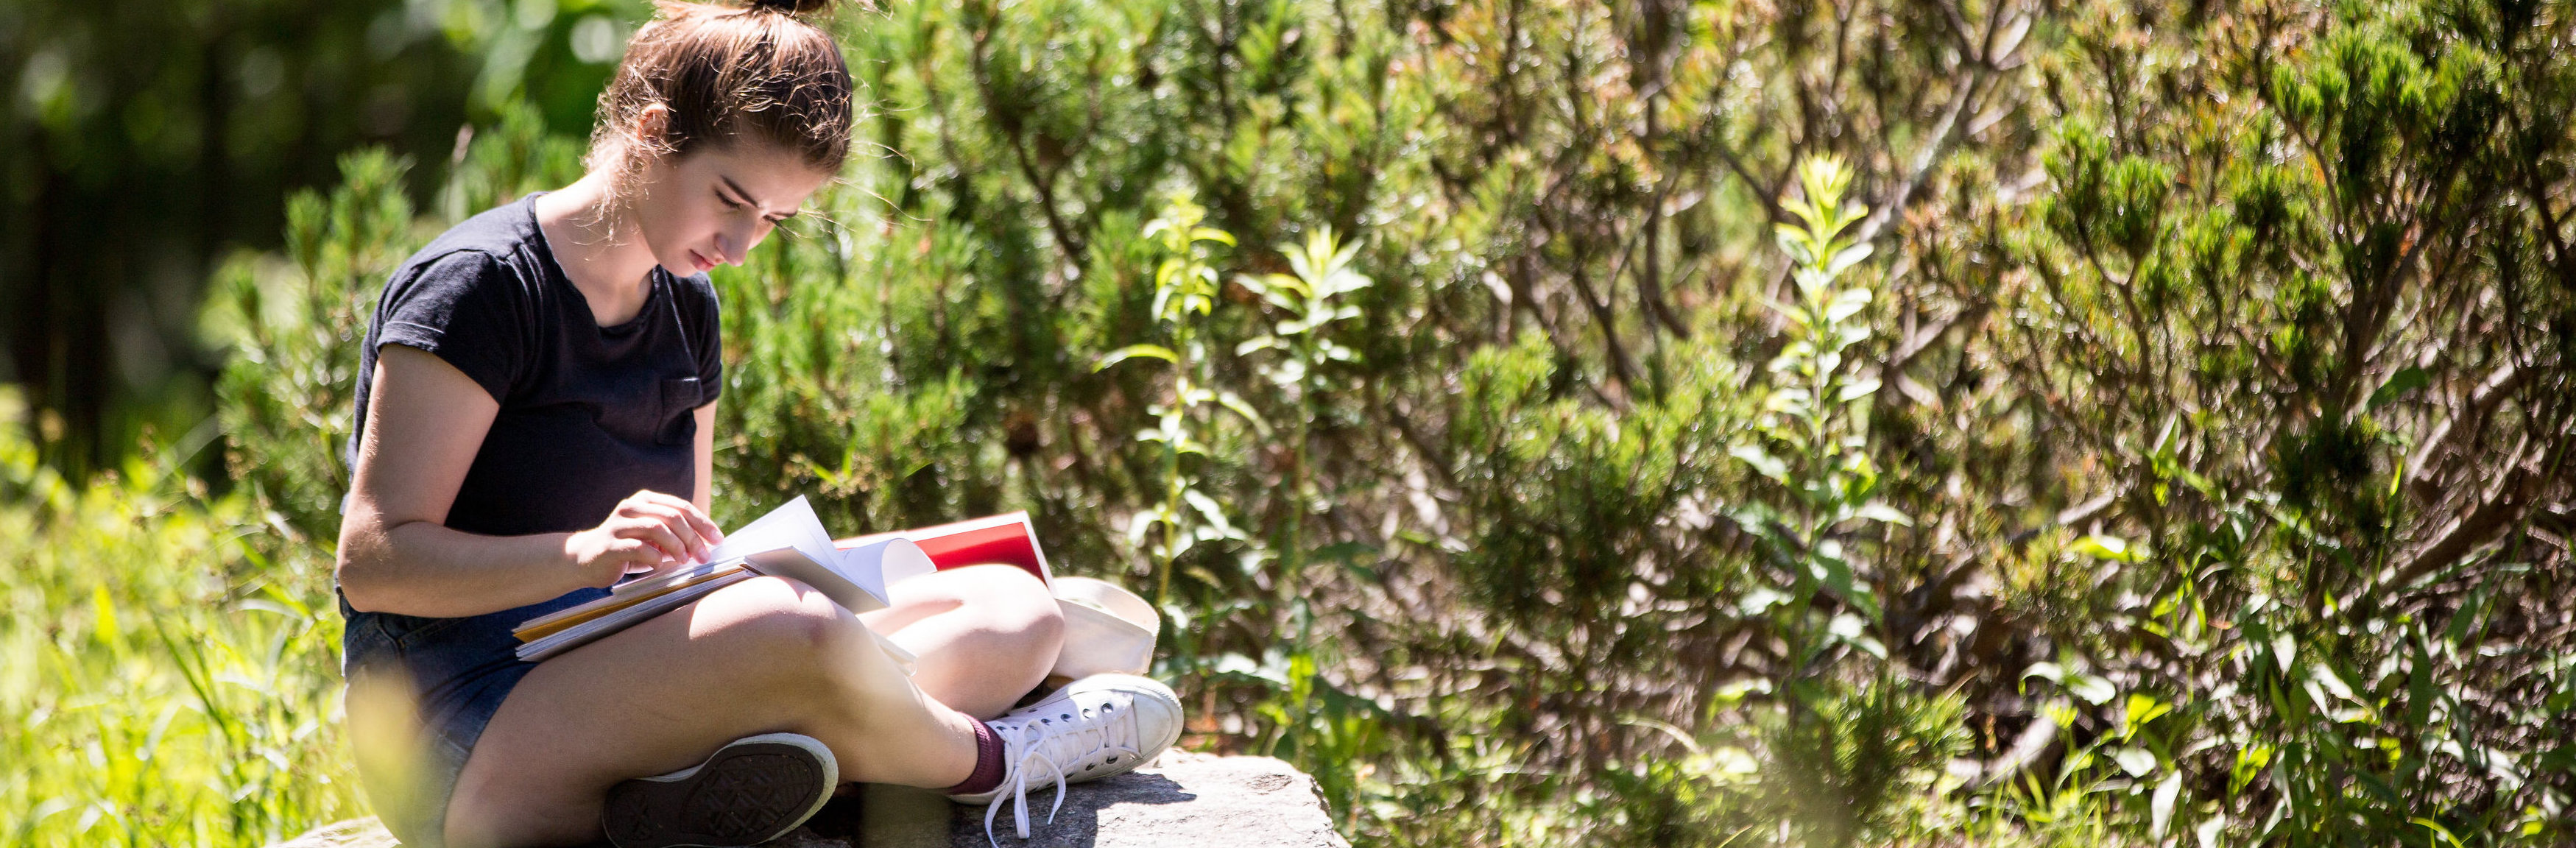 Young Writers sits outside writing in notebook